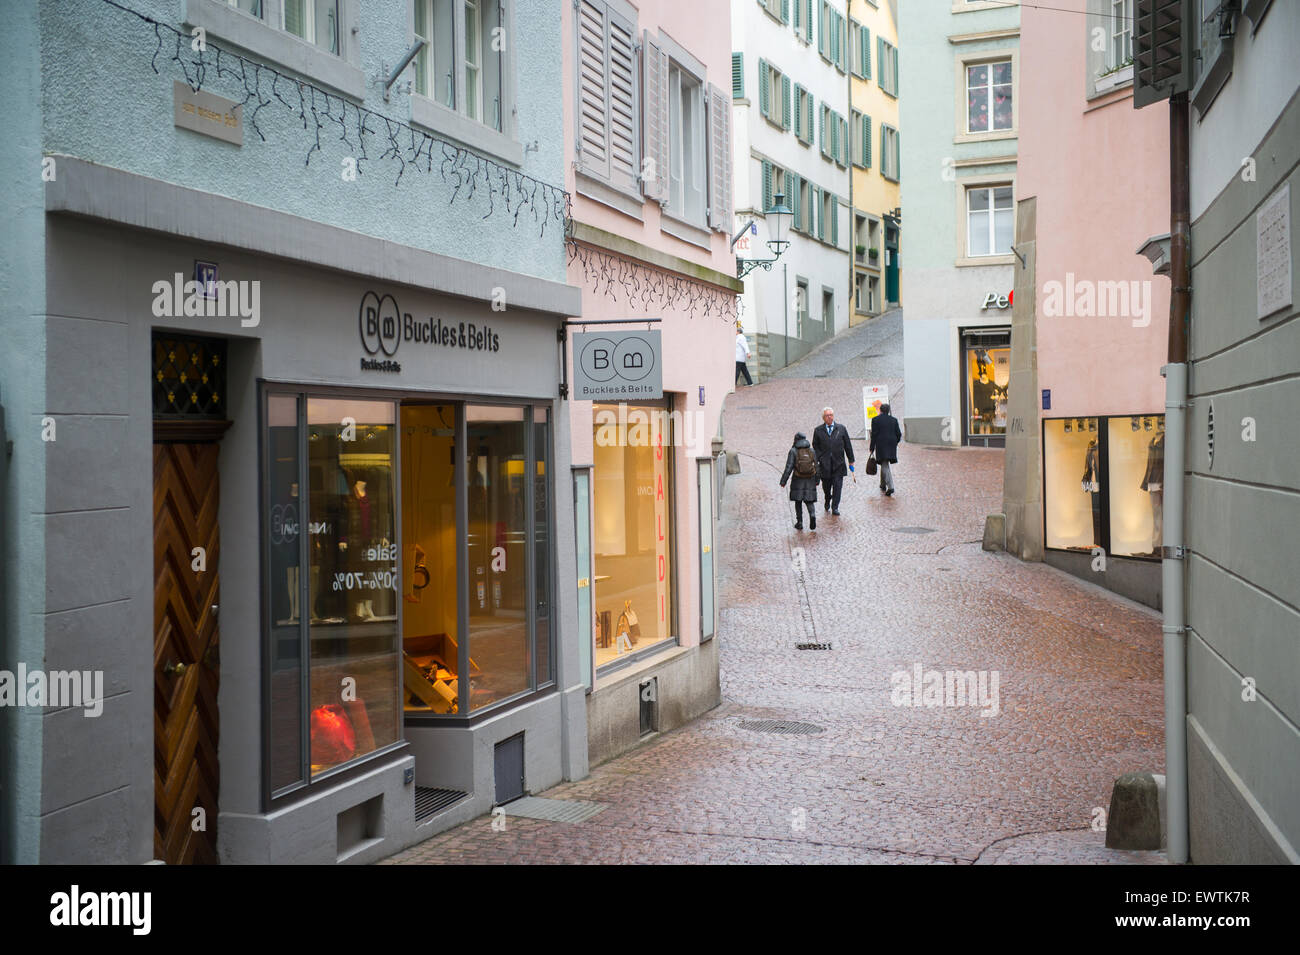 Narrow cobblestone lane with boutique shops in Zurich Switzerland, Europe - Stock Image